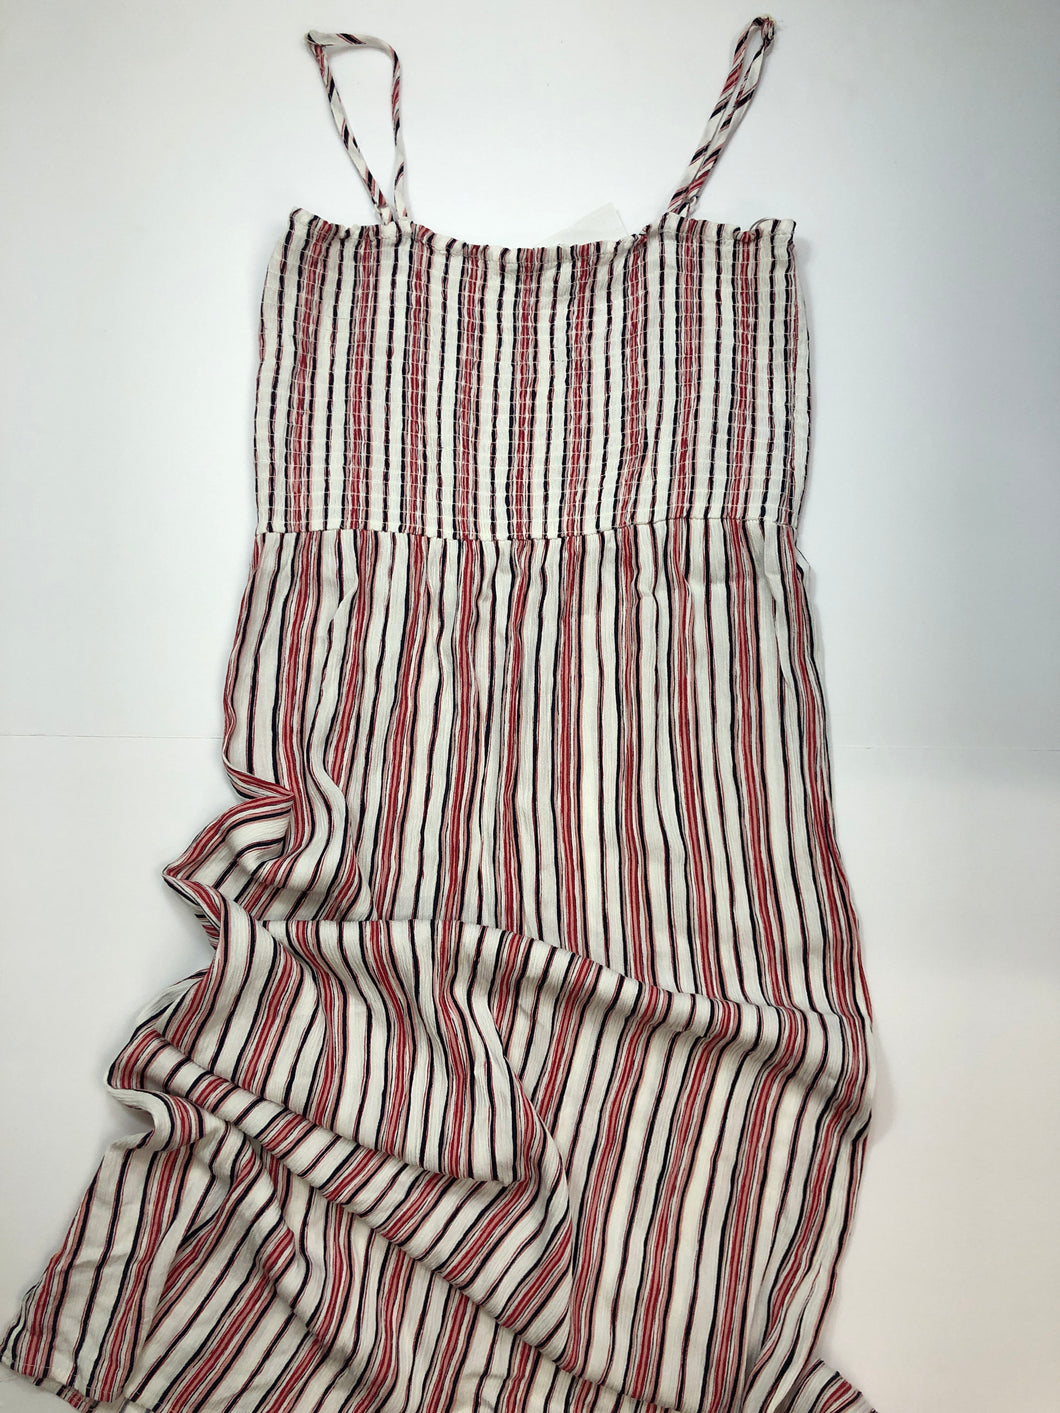 Gently Used Women's Bluenotes Dress Size L